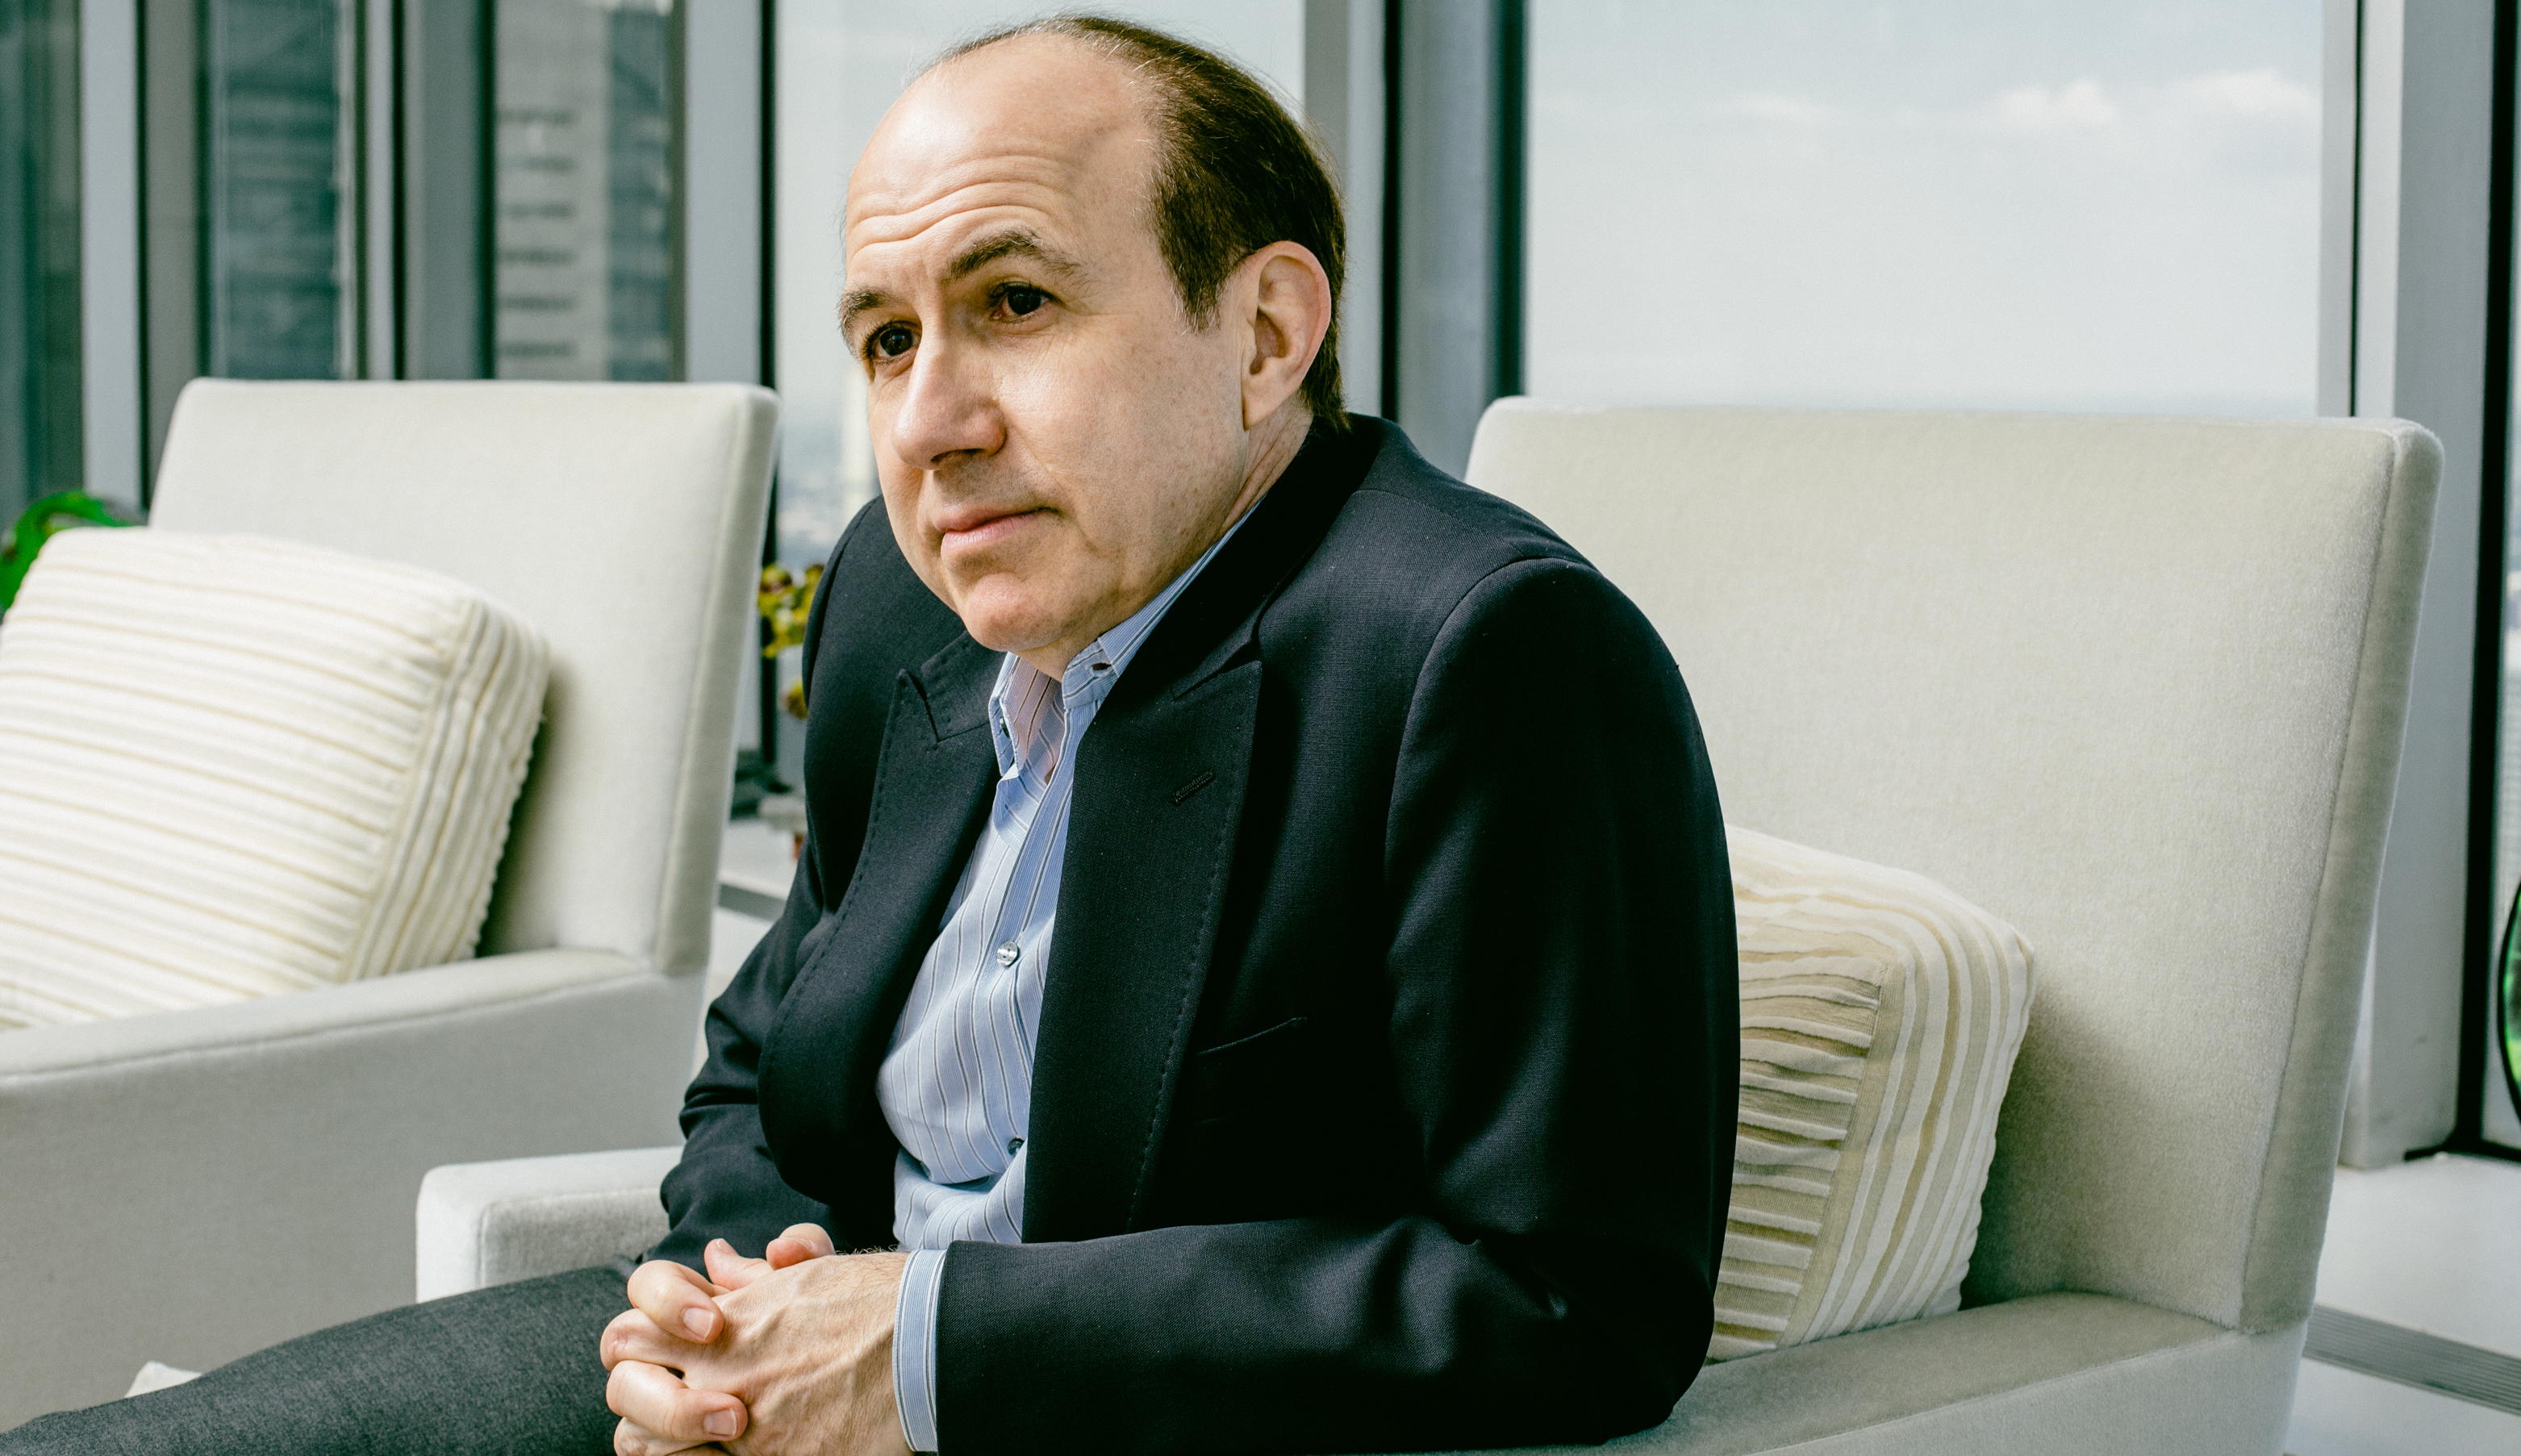 Dauman at Viacom offices on June 17, 2016.